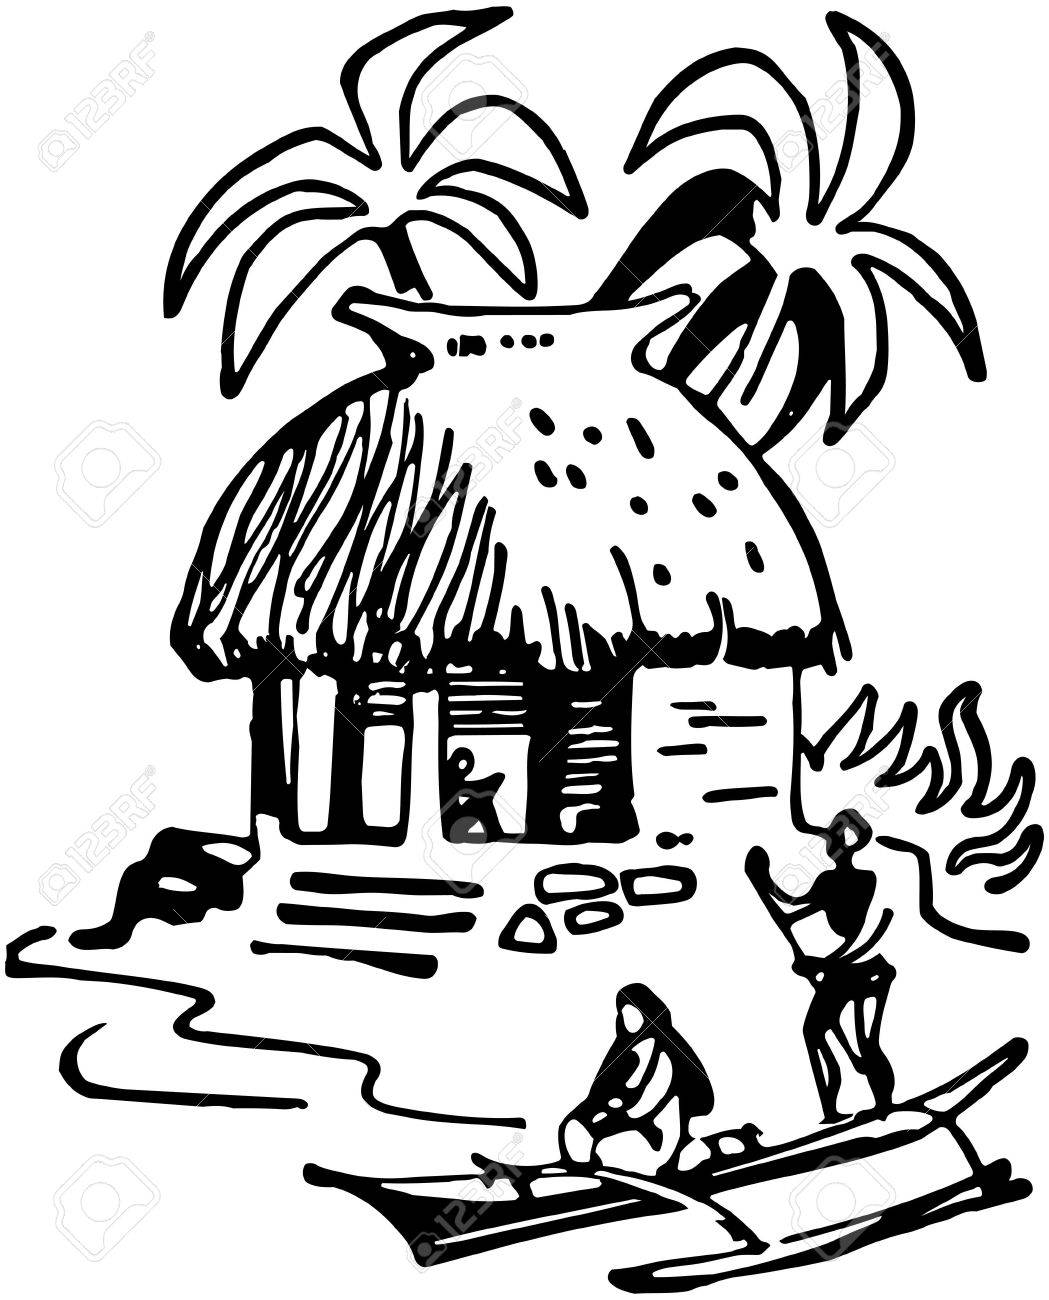 Tiki Hut Royalty Free Cliparts, Vectors, And Stock Illustration ...